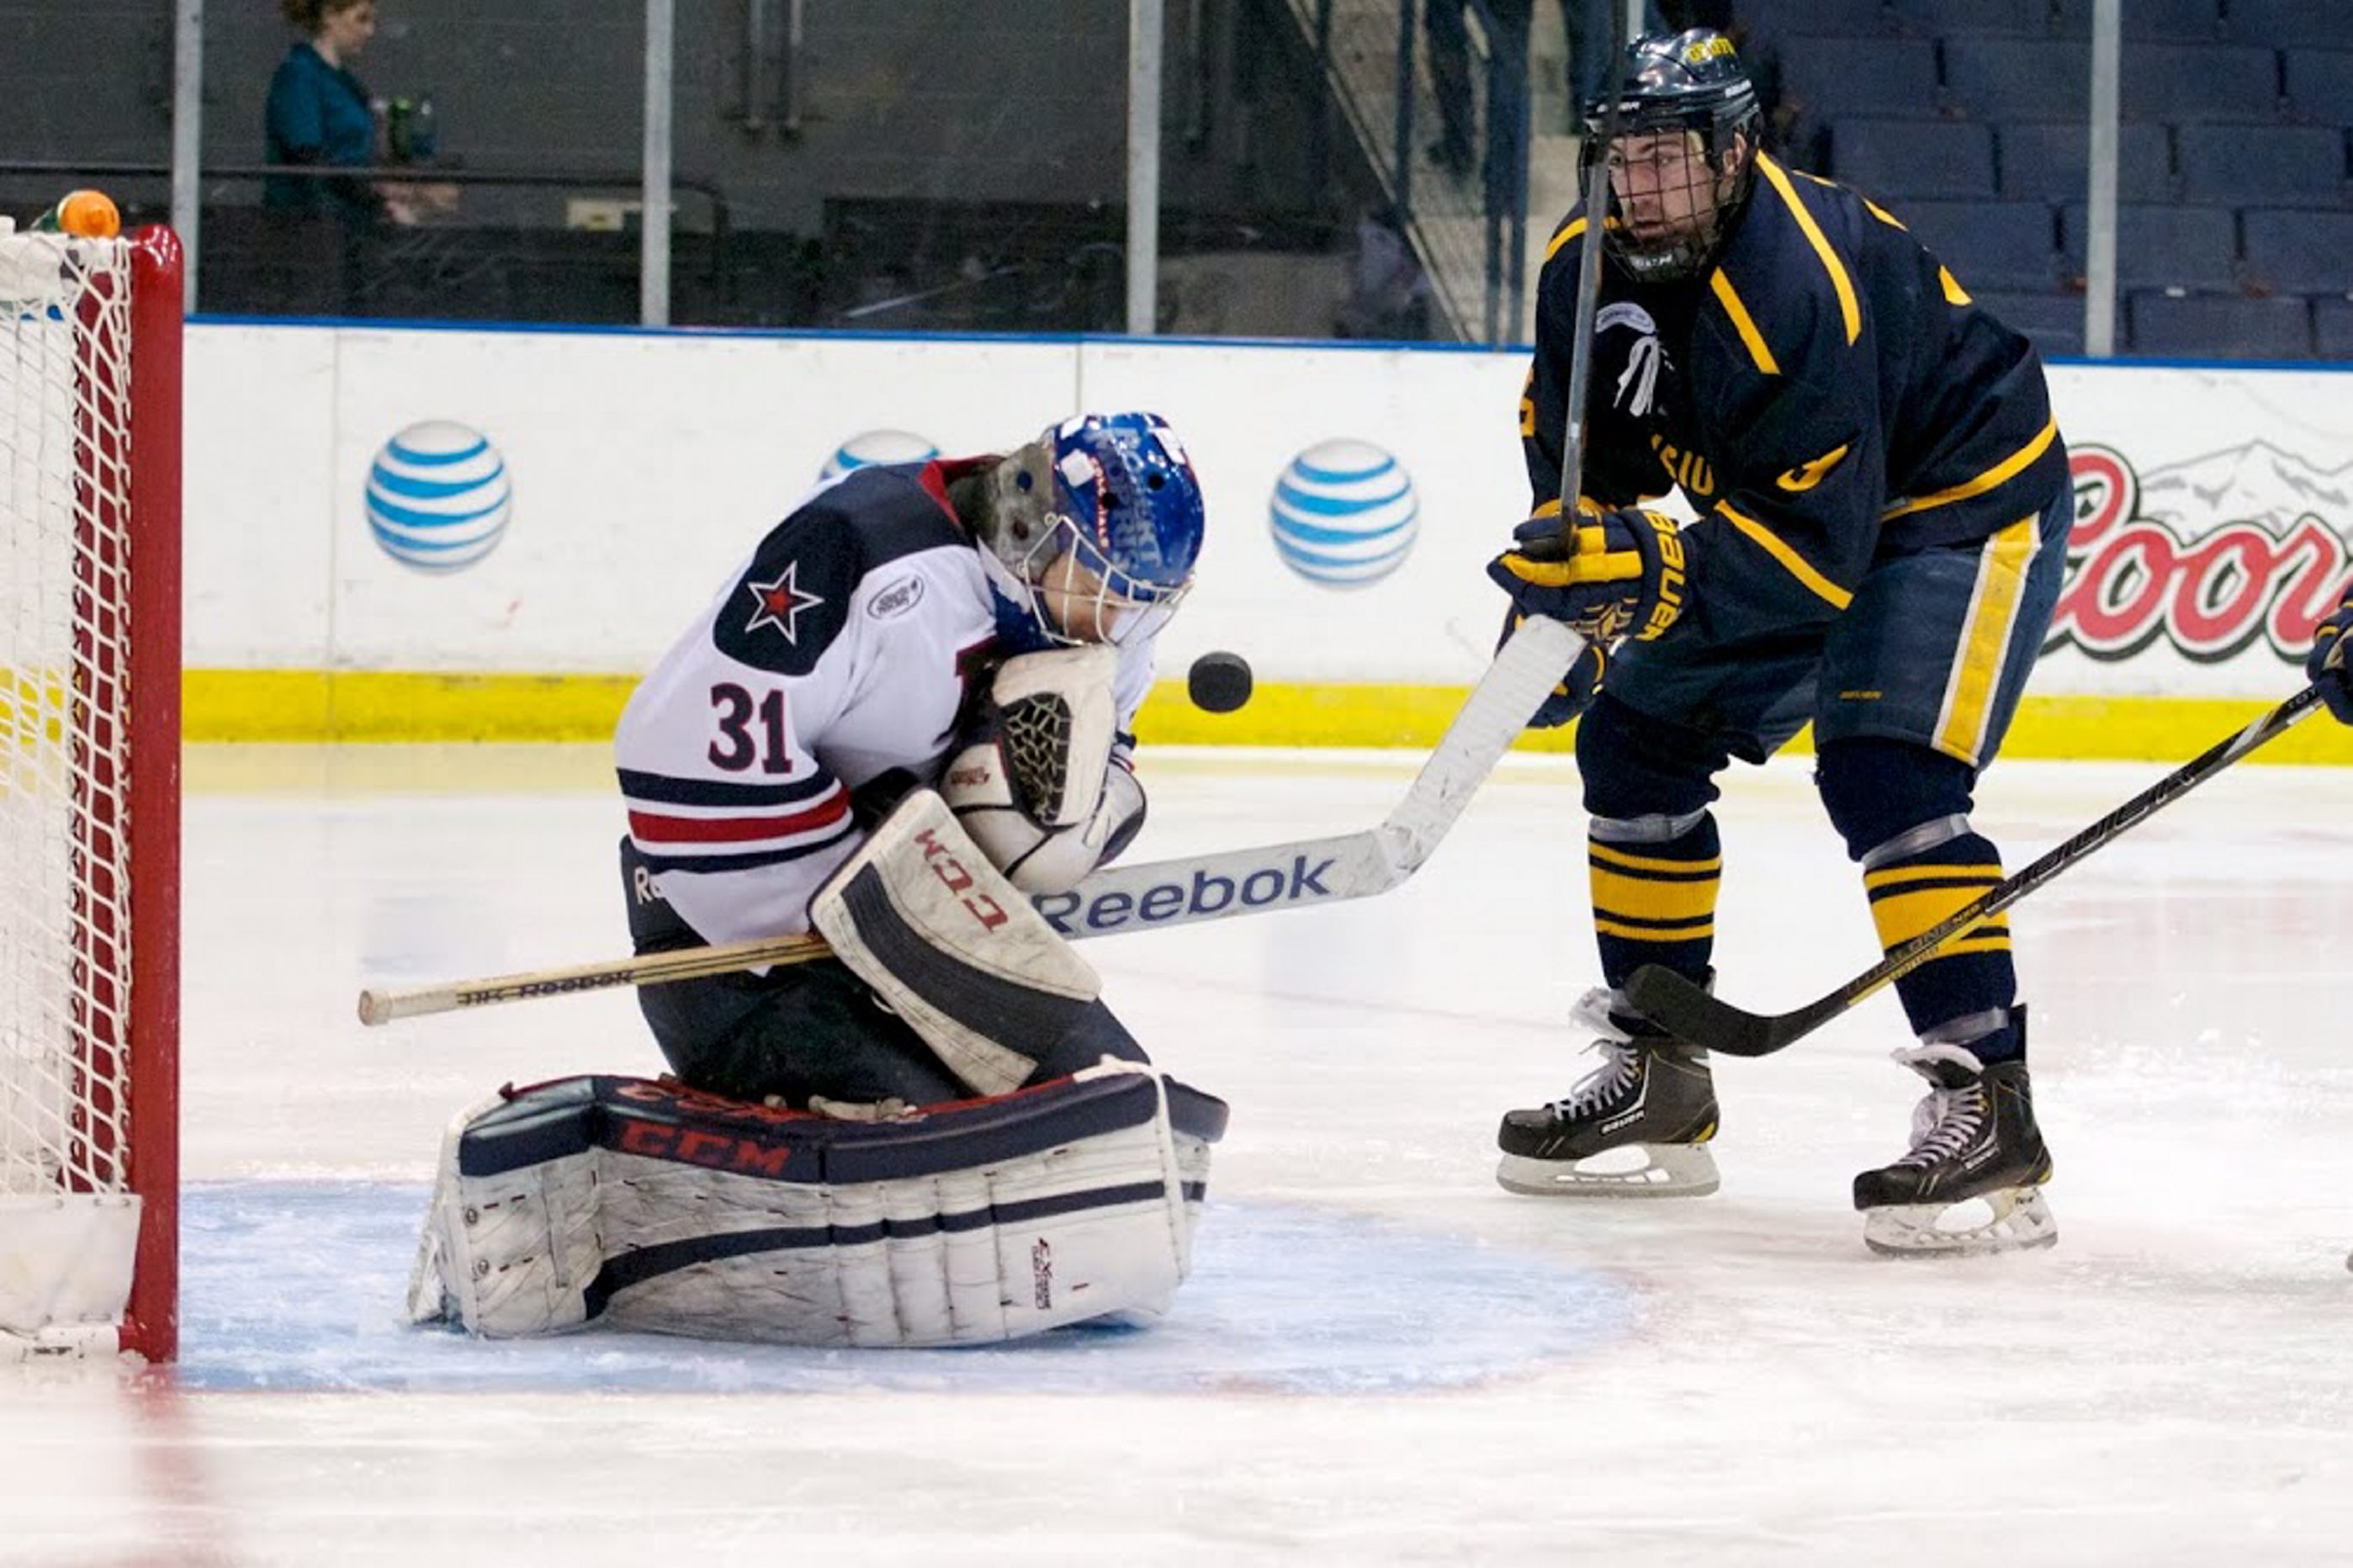 Robert Morris goaltender Dalton Izyk stops Canisius' Taylor Law for one of his 27 saves Saturday at Blue Cross Arena.